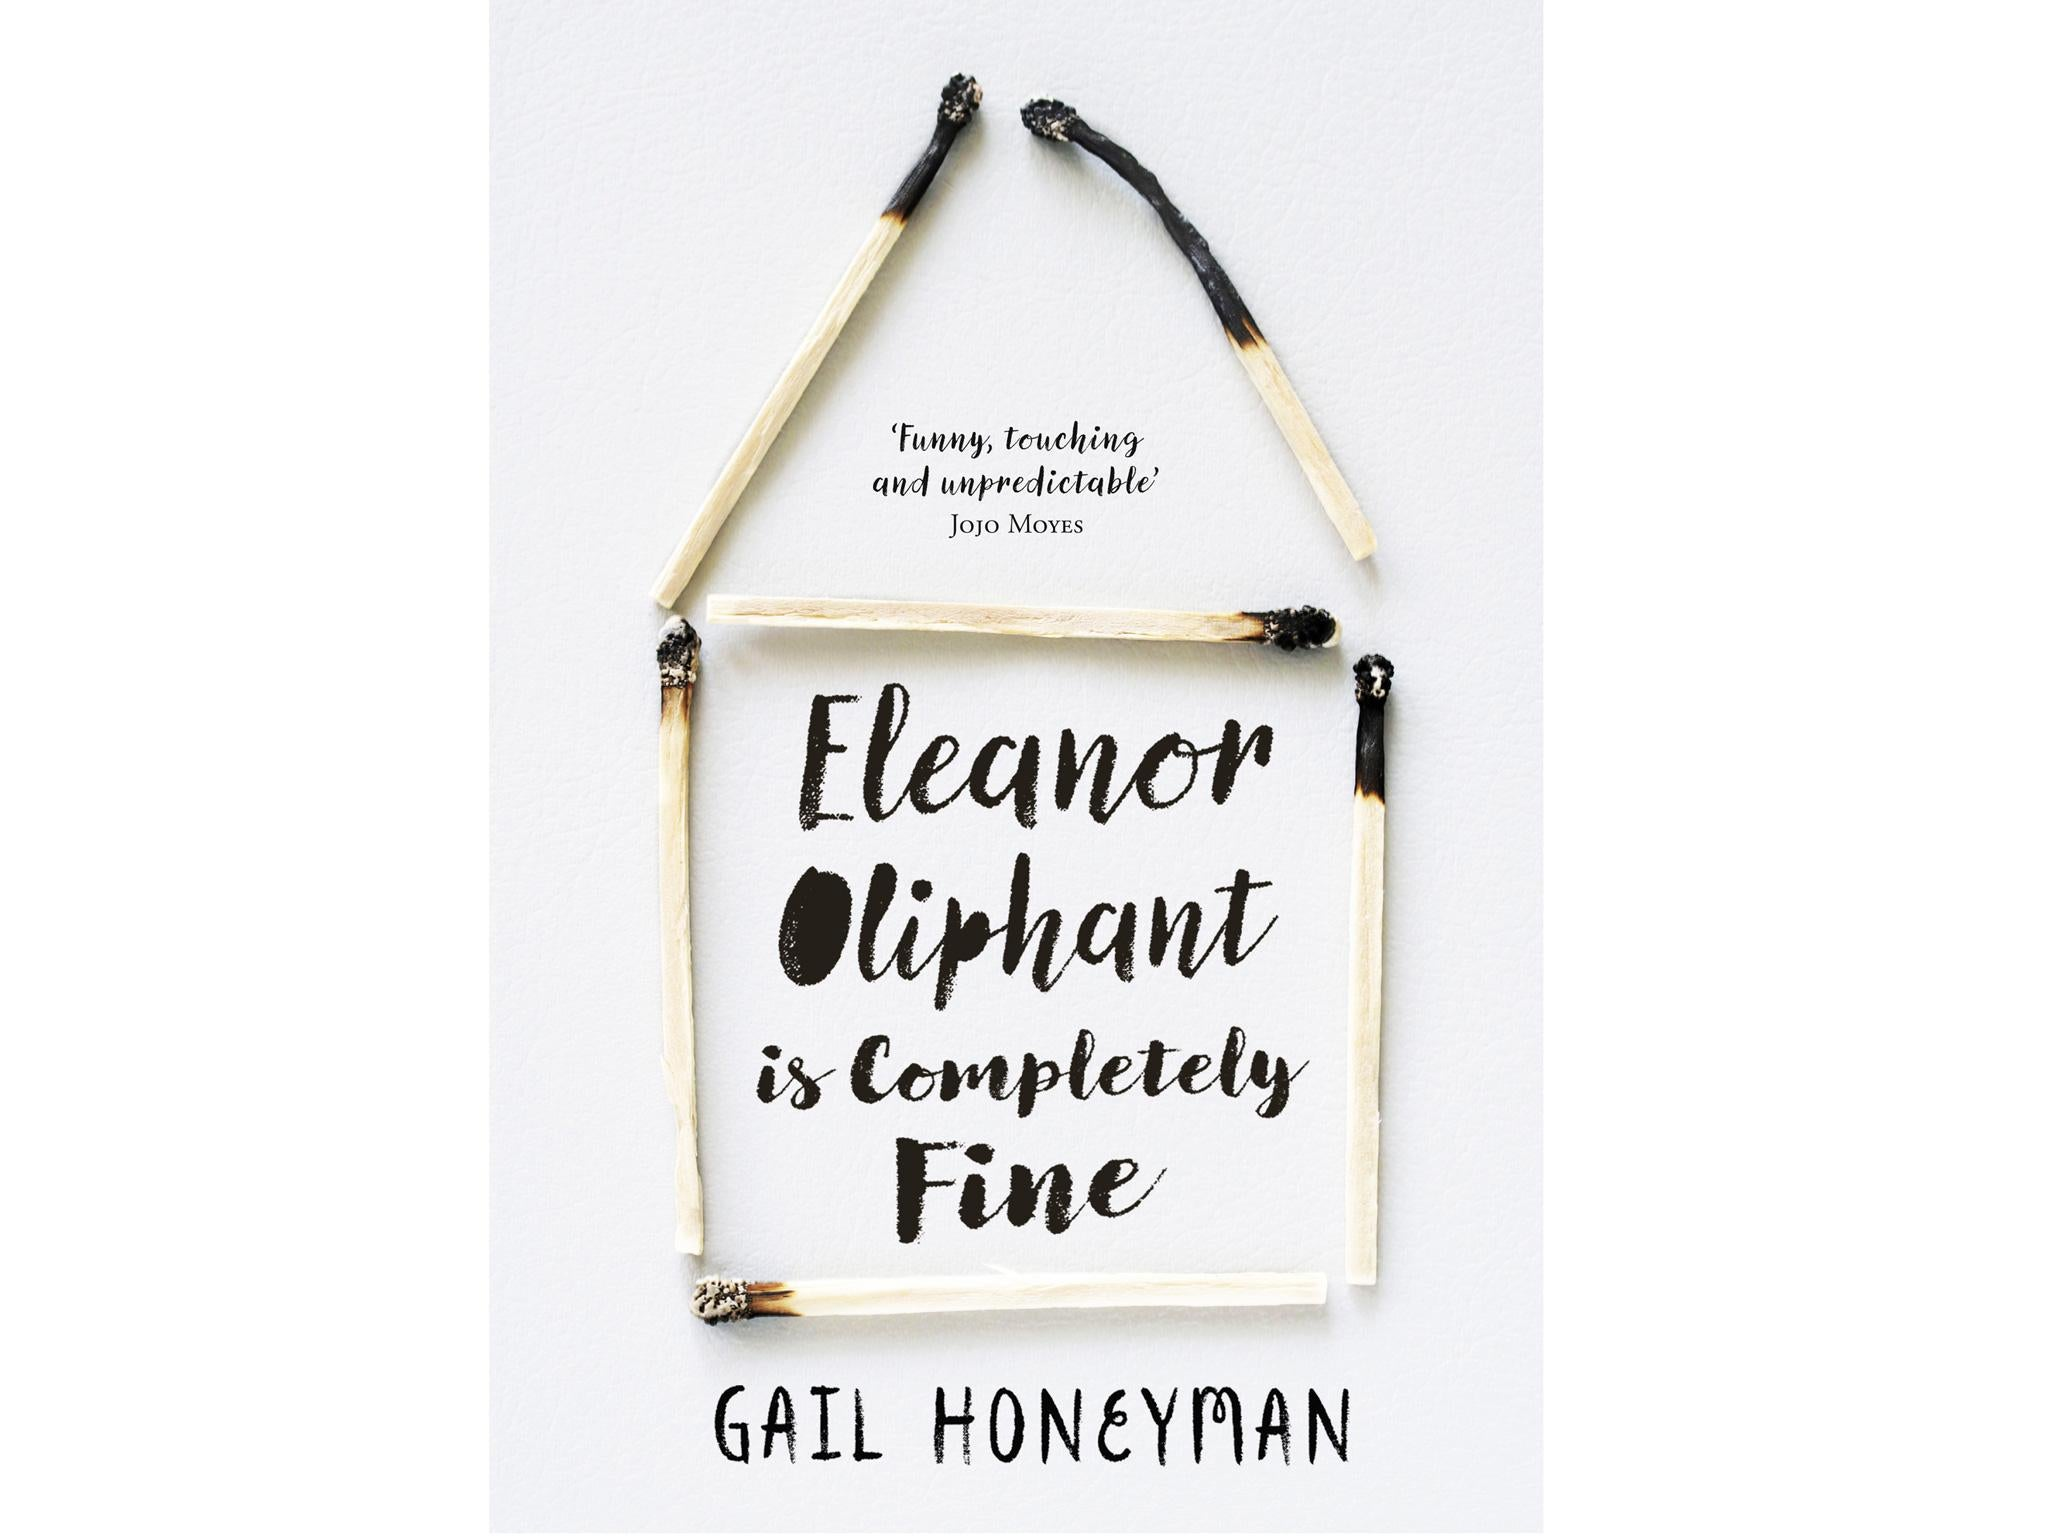 10 best debut novels by women authors | The Independent